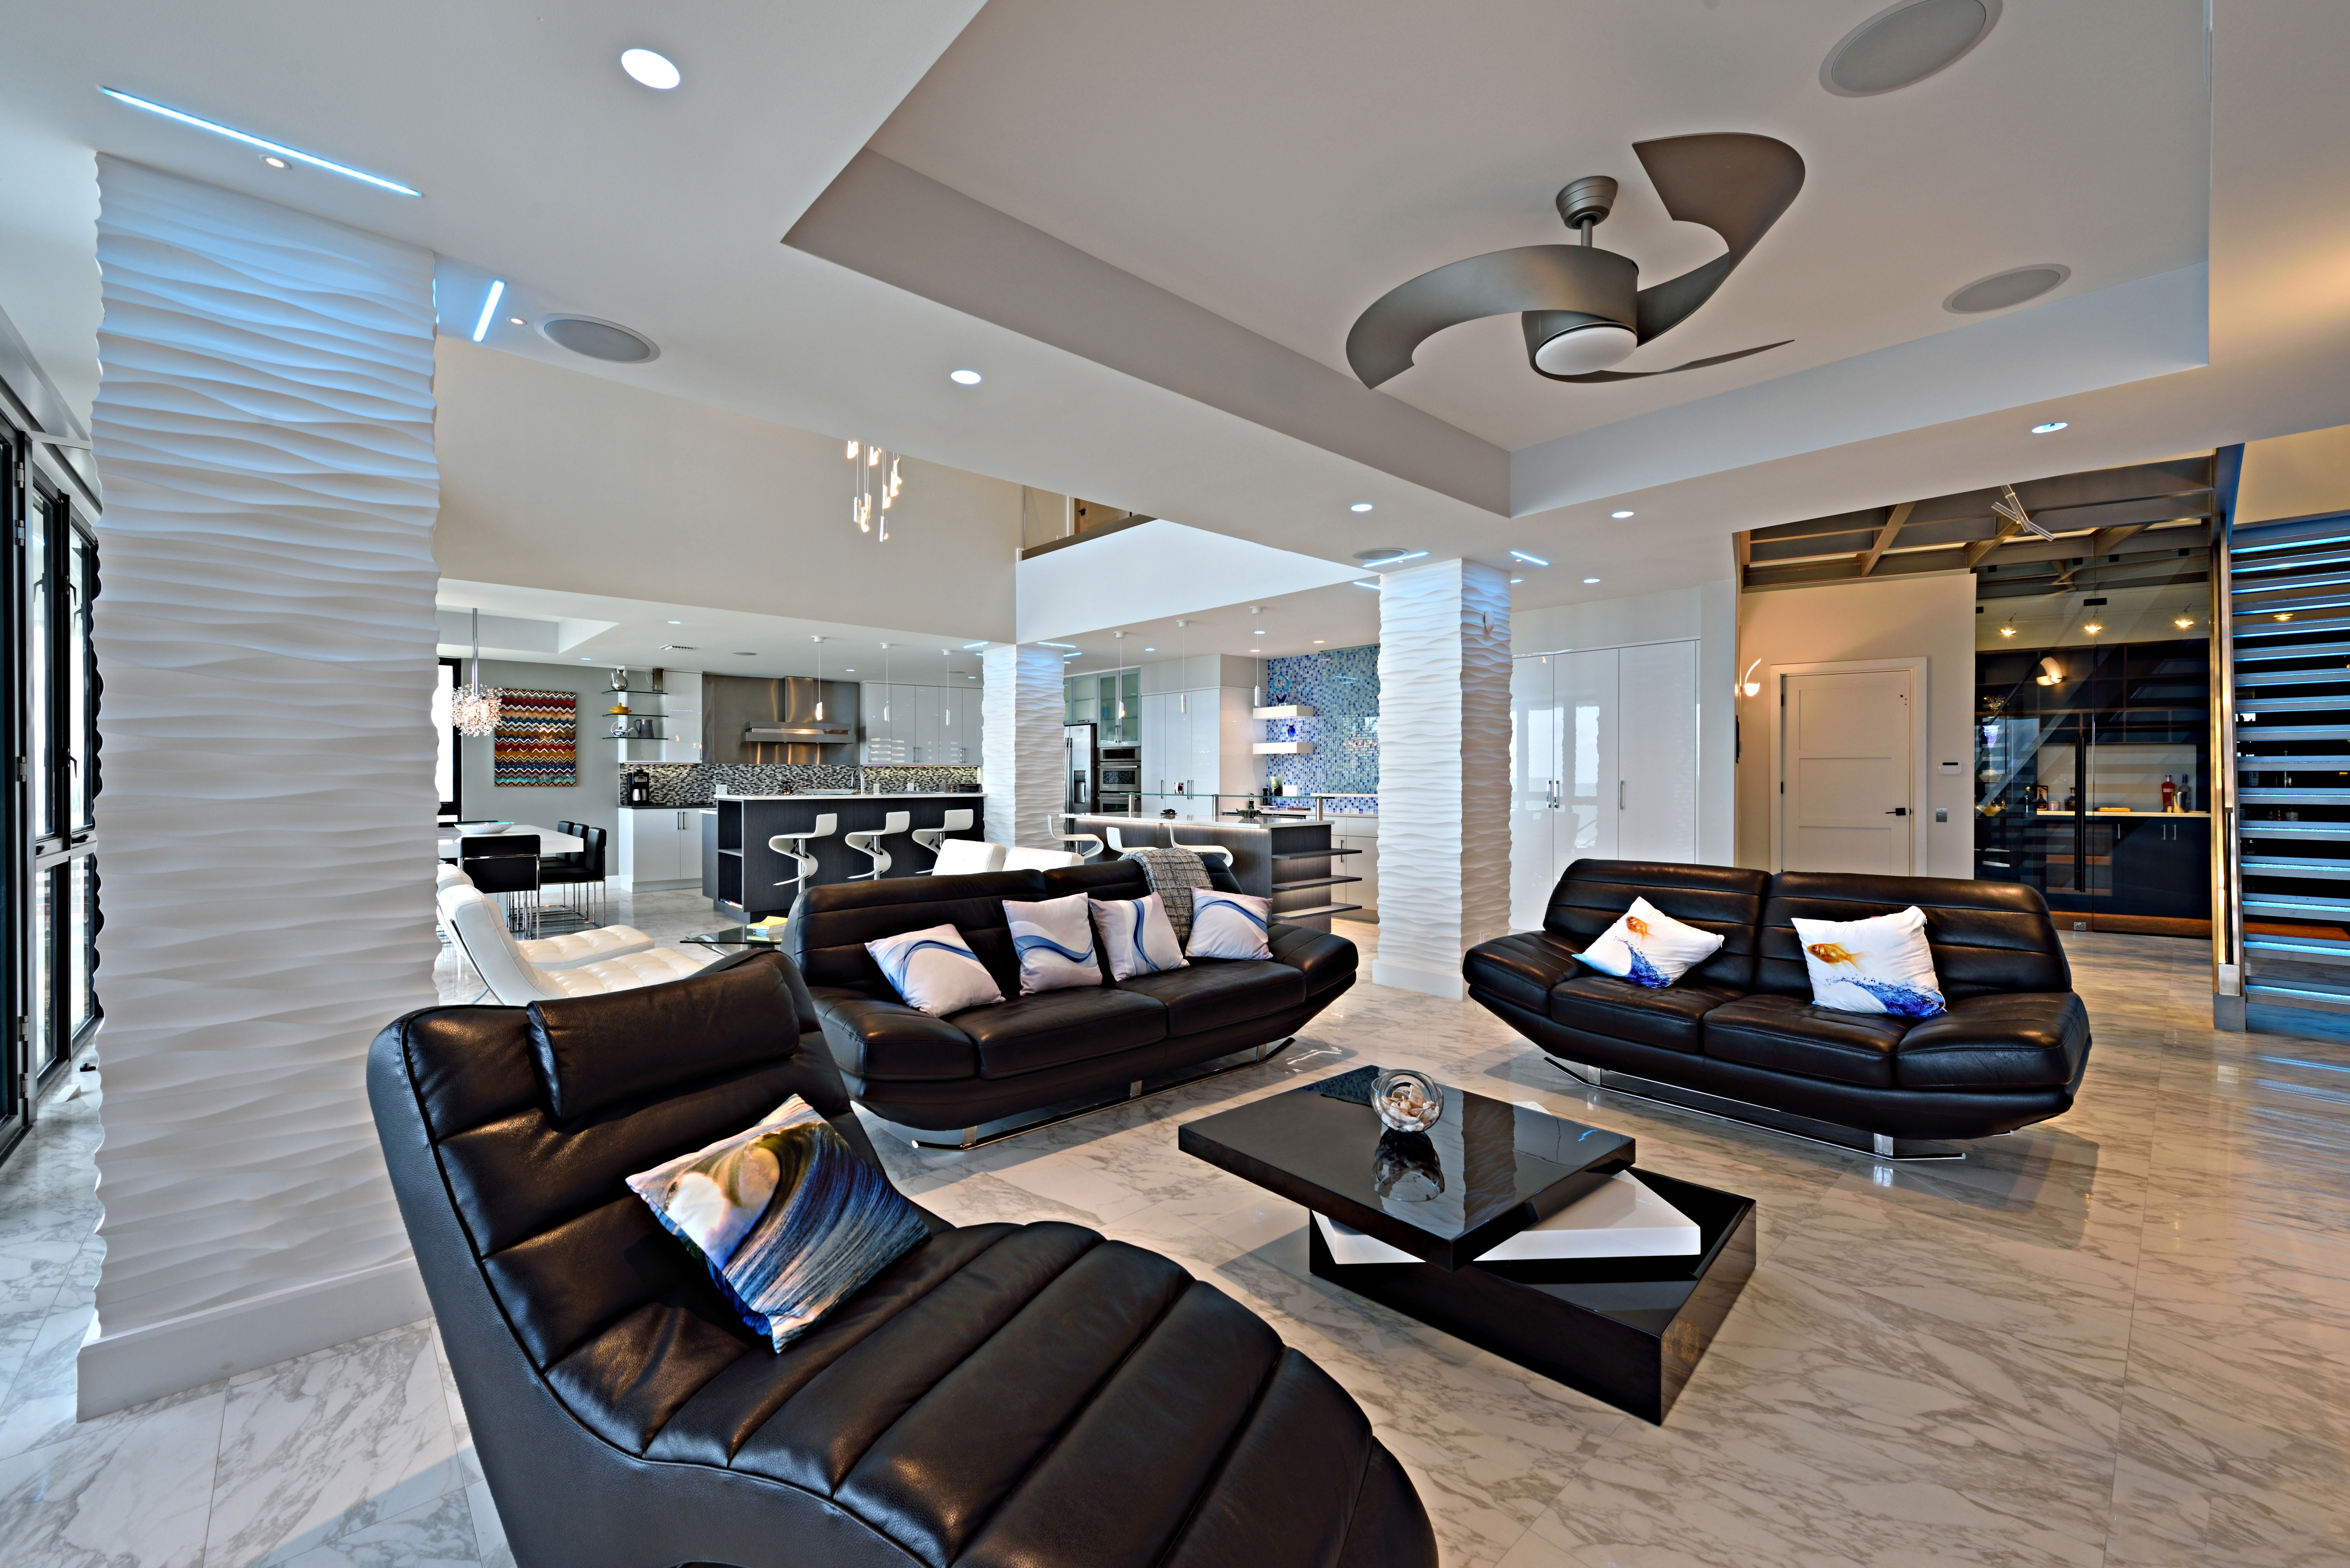 Modern Living Room Ceiling With Ceiling Fan (View 6 of 31)